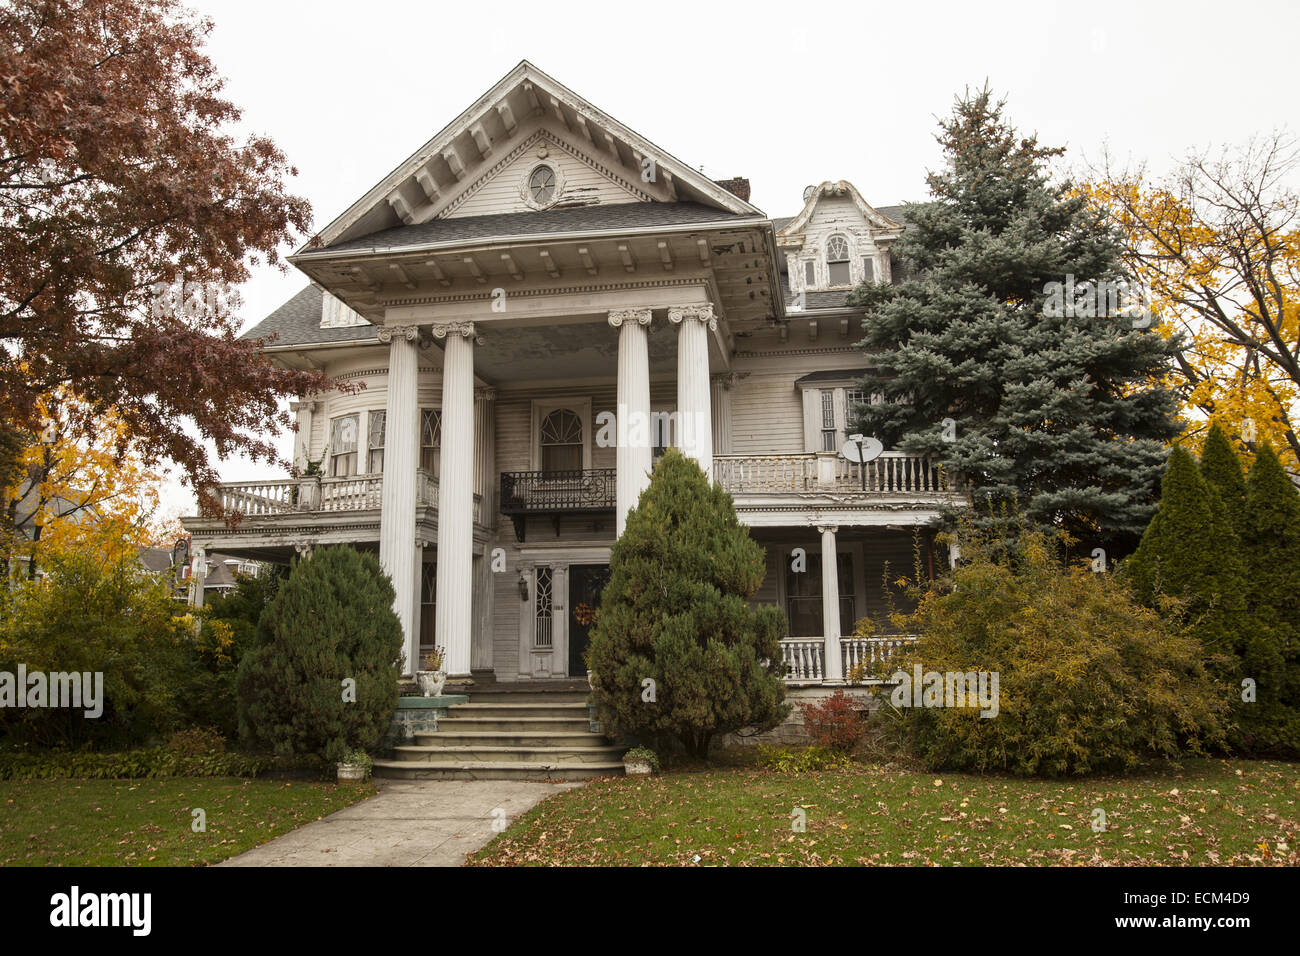 Old rambling victorian style house in ditmas park brooklyn ny